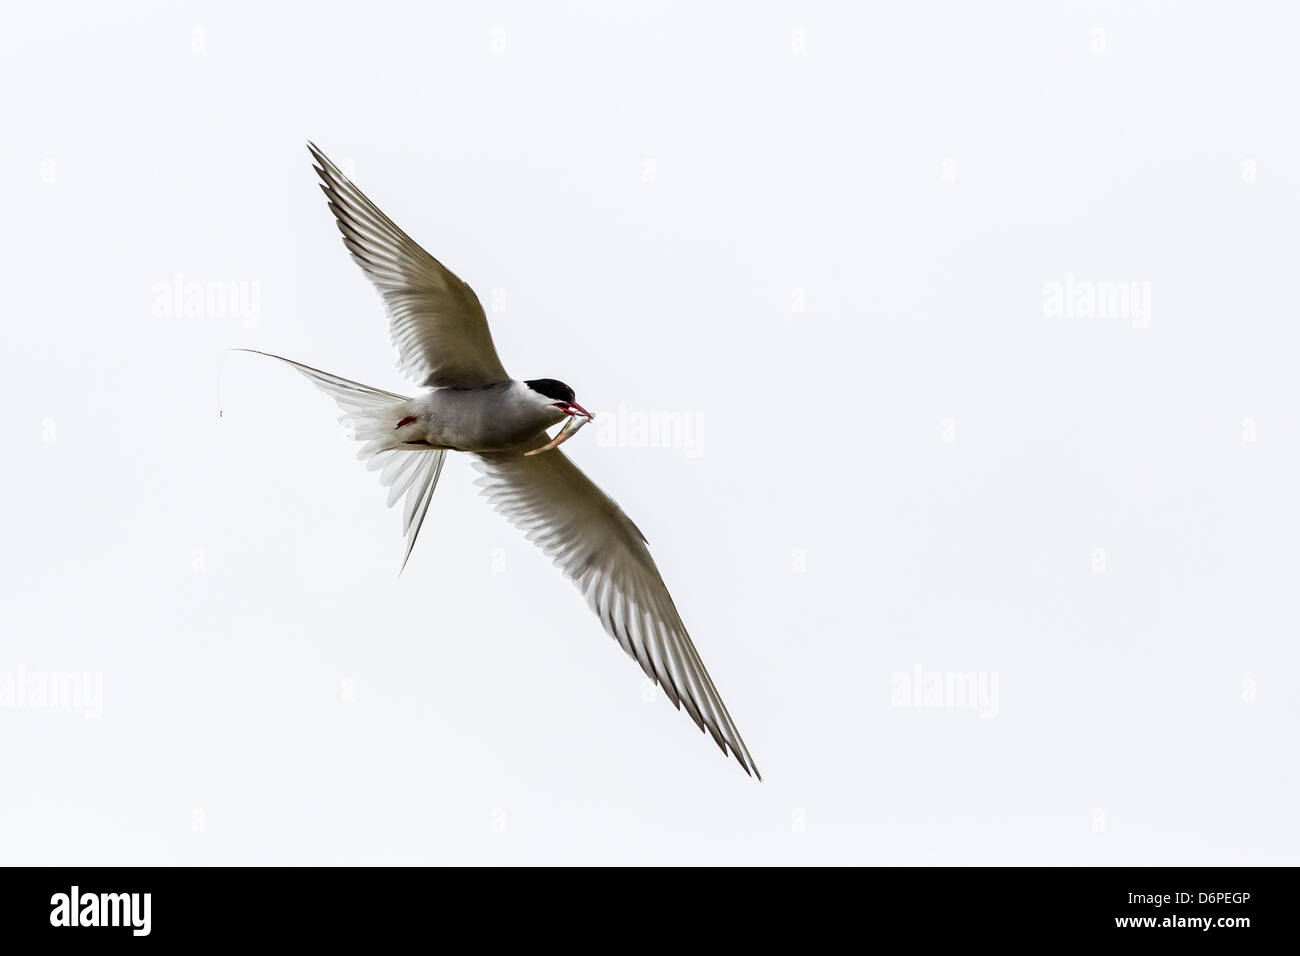 Adult arctic tern (Sterna paradisaea) returning to chick with small fish, Flatey Island, Iceland, Polar Regions - Stock Image